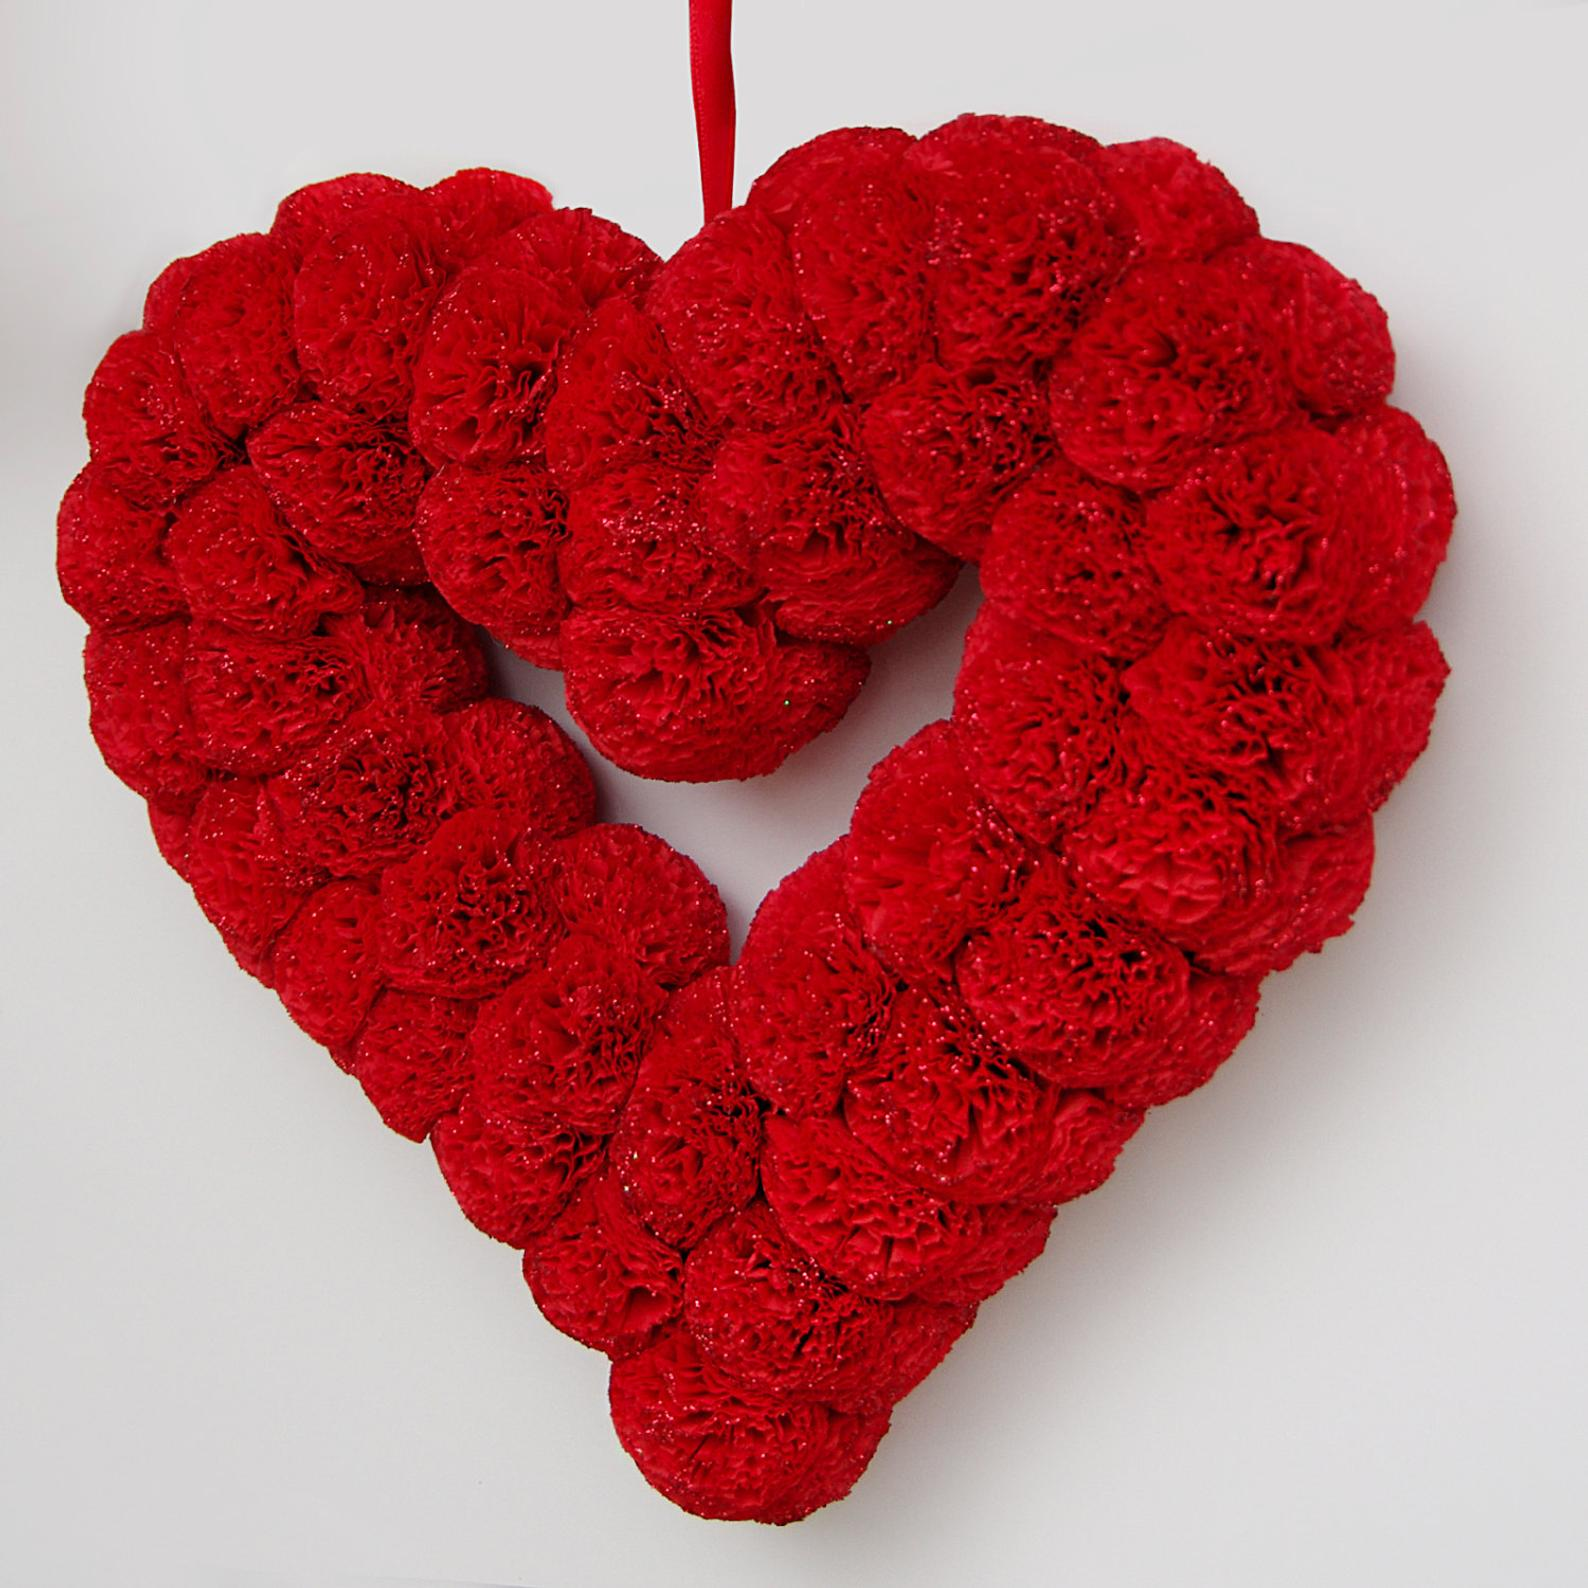 Red heart-shaped wreath for Valentine's Day